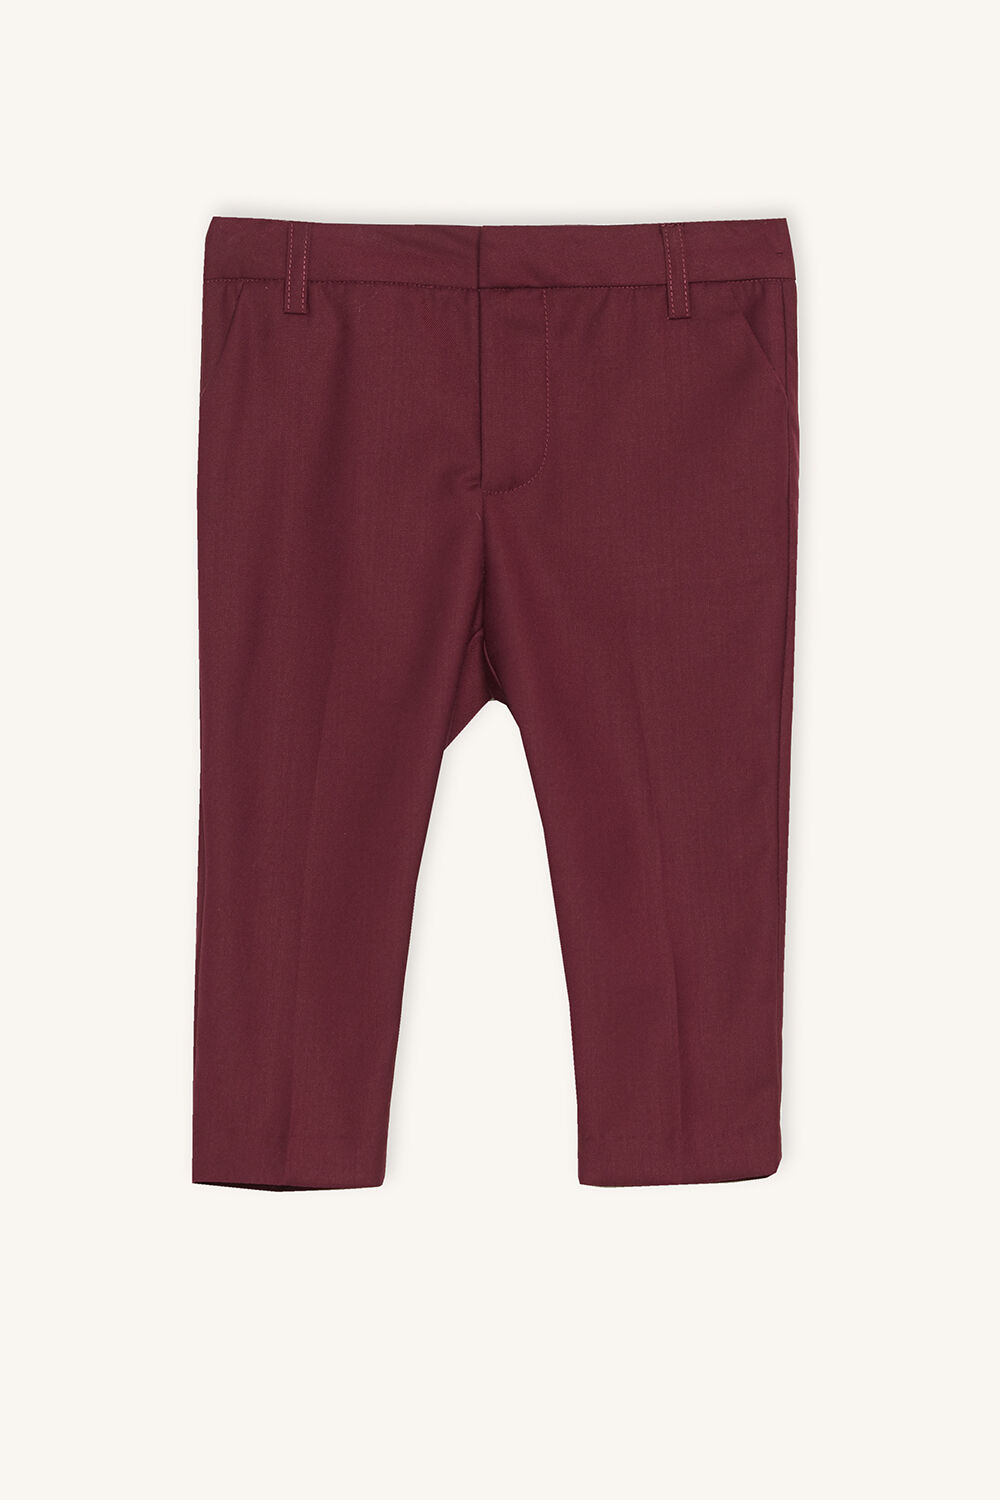 BABY BOY tapered suit pant in colour BURGUNDY